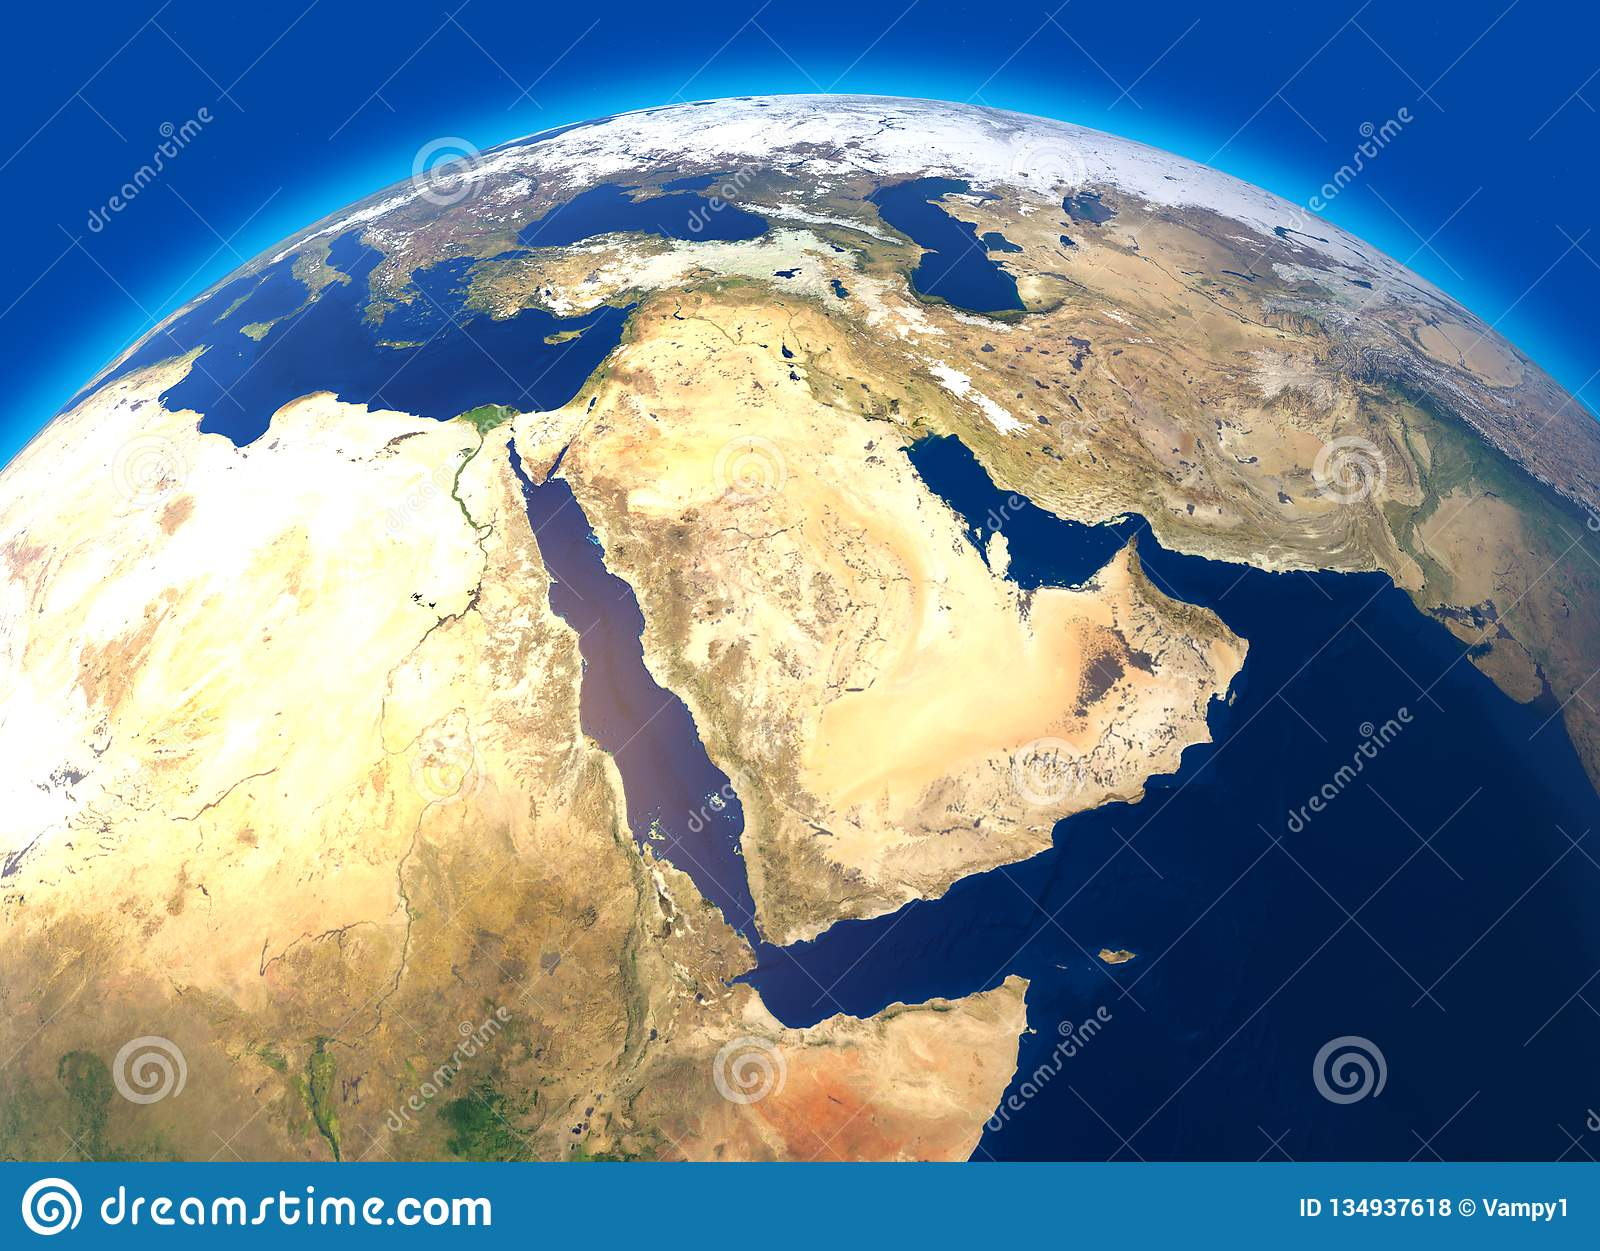 Physical Map Of The World Satellite View Of The Middle East Africa